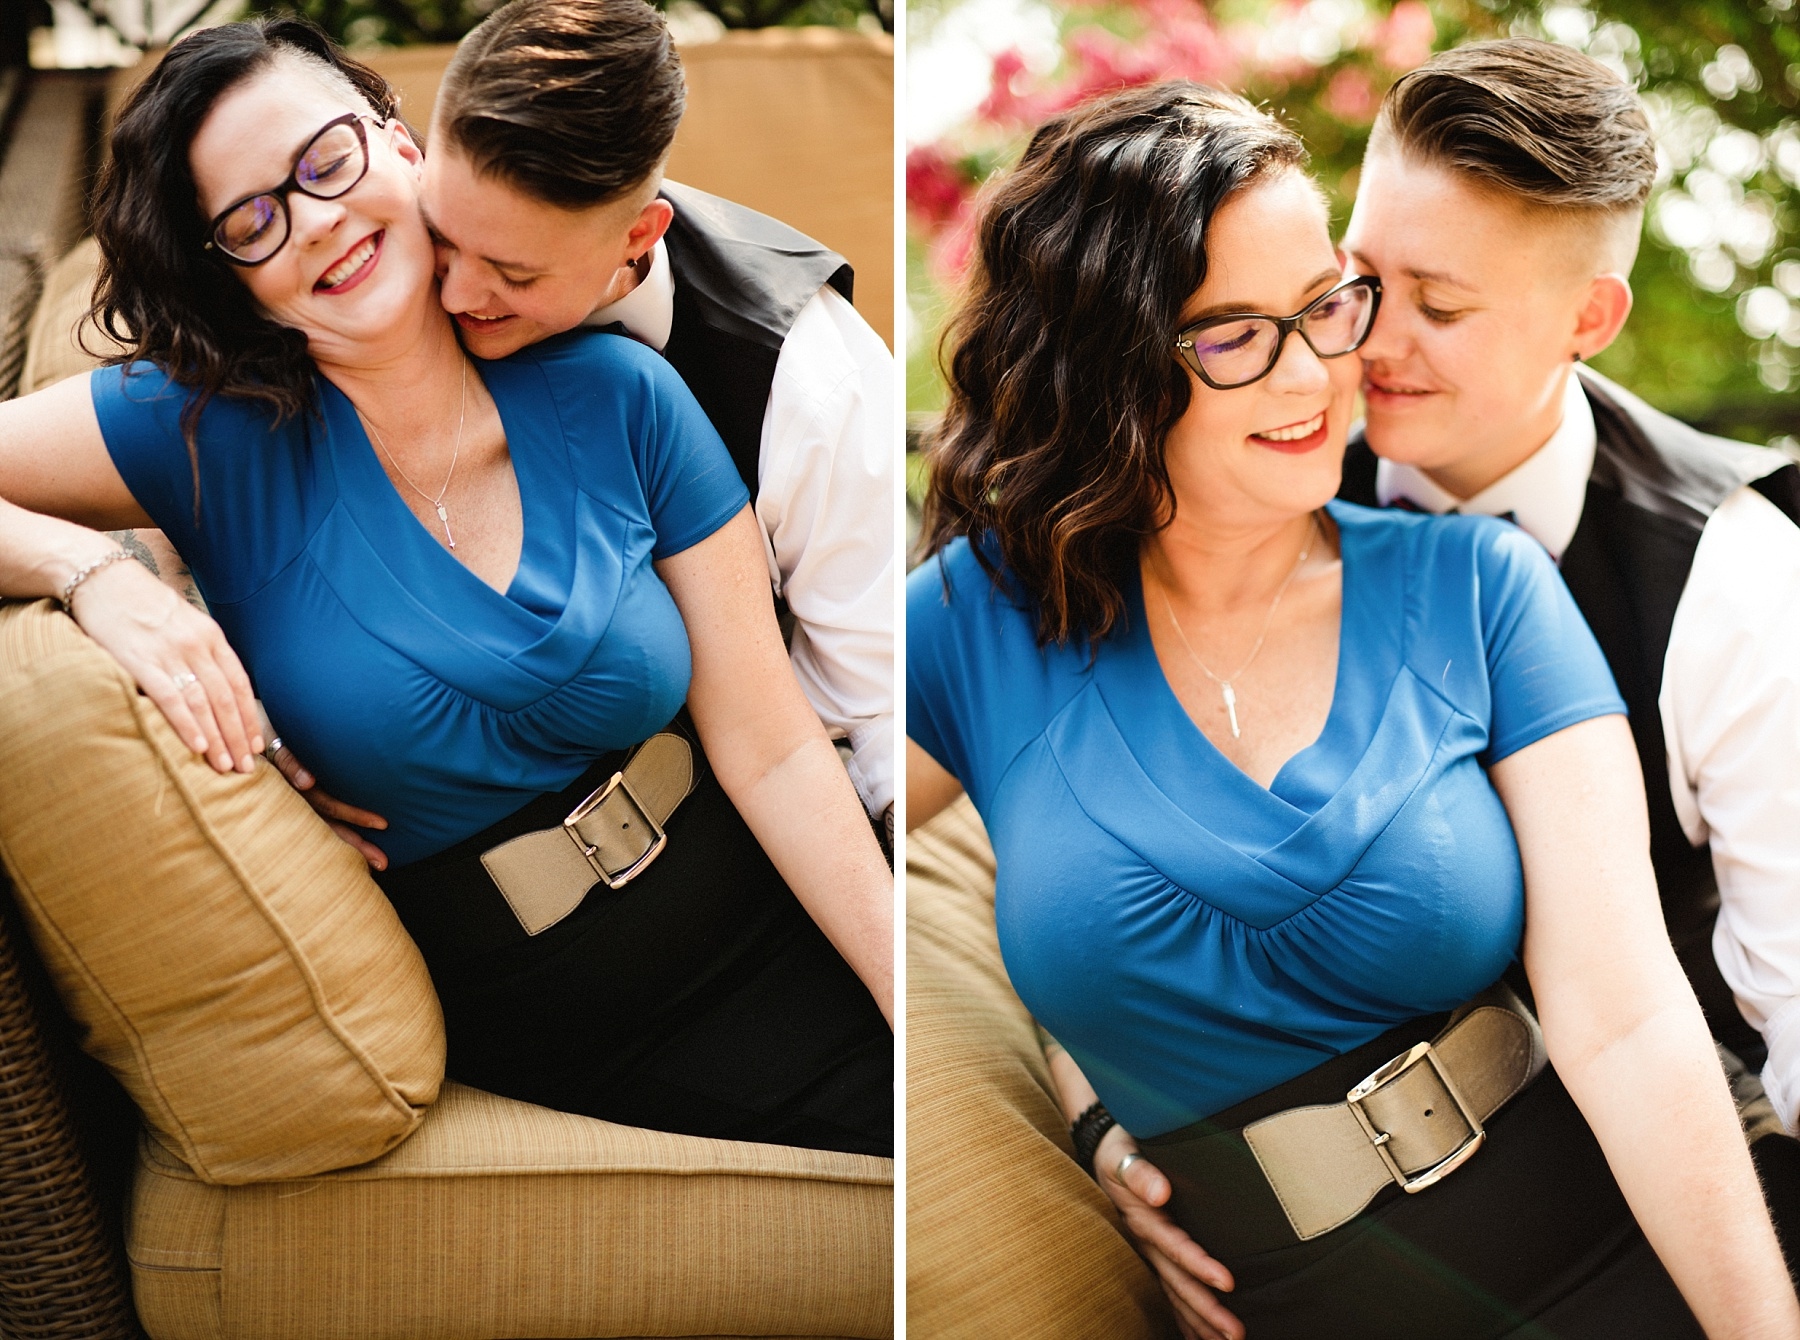 Roseville LGBTQ Engagement Session - Sarah Maren Photography